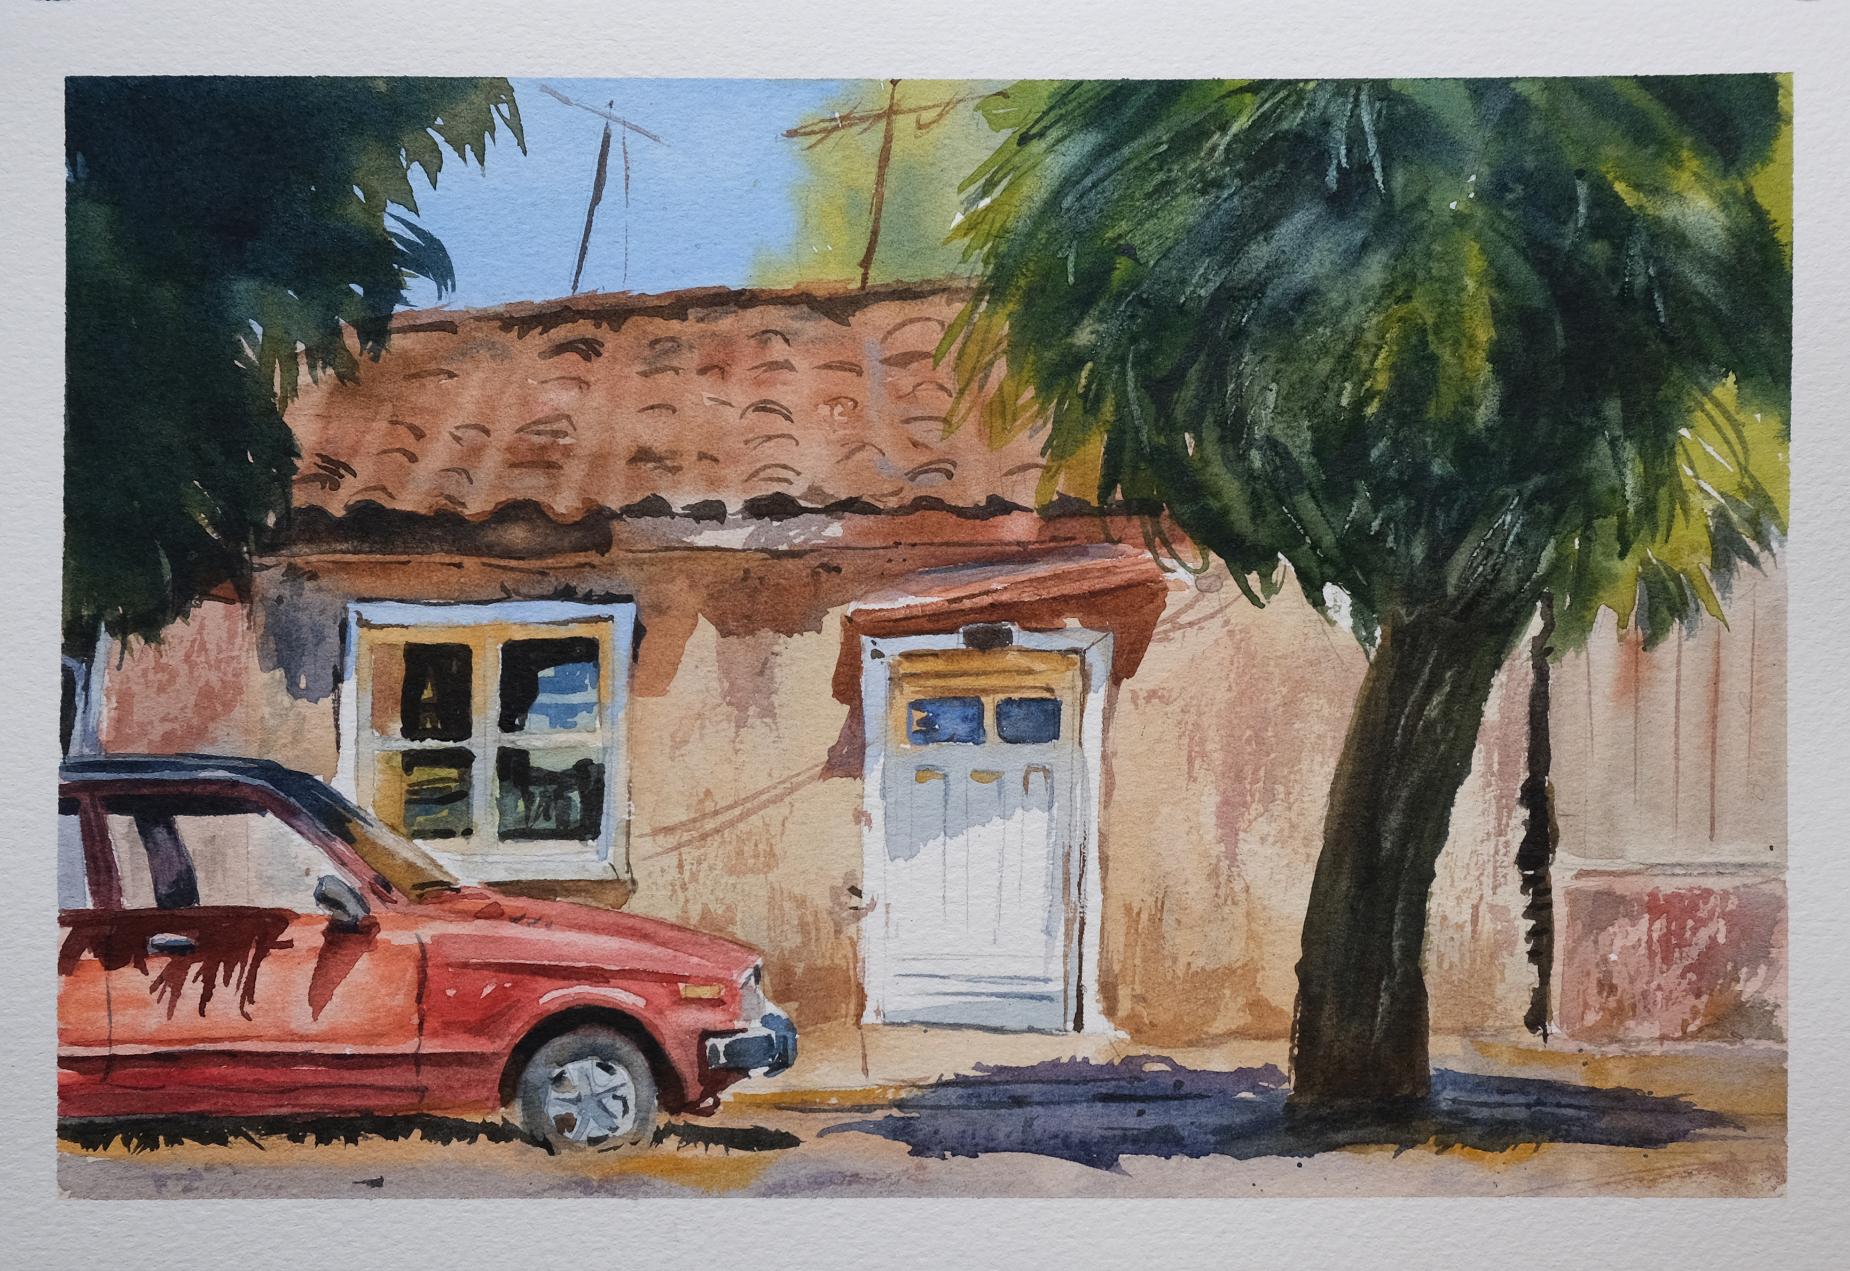 Watercolour painting of a house and car.